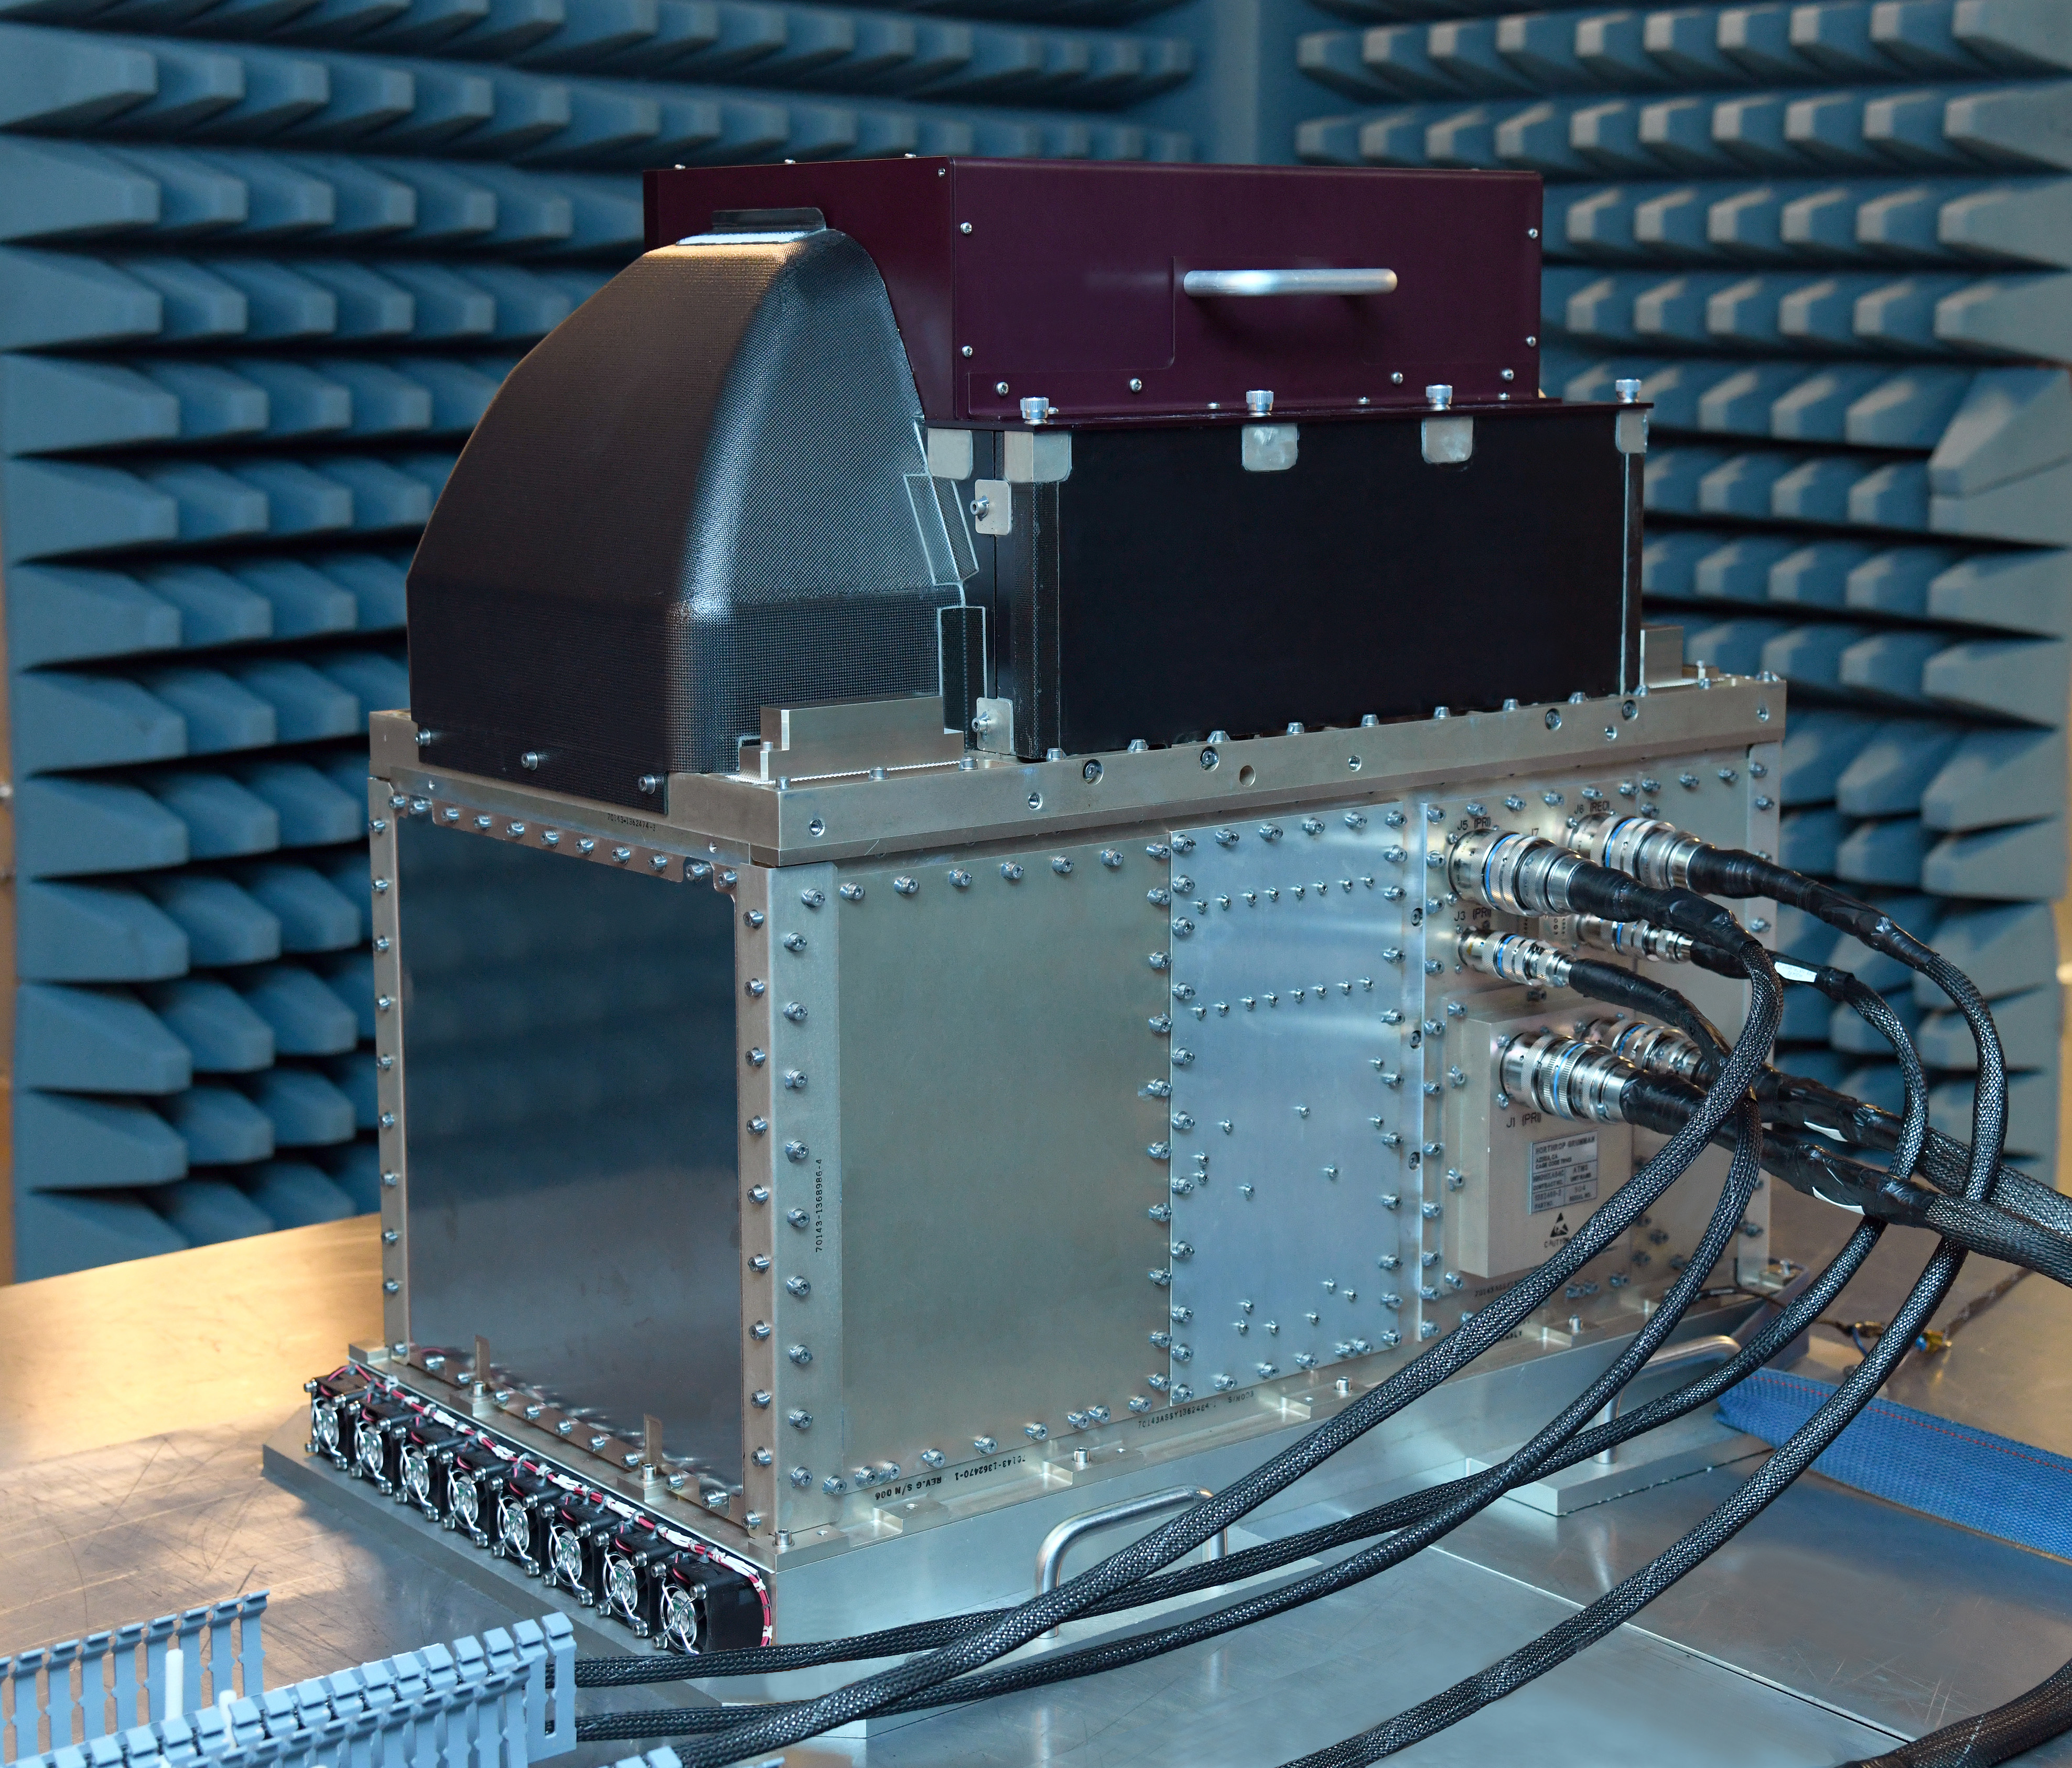 Joint Polar Satellite System's Microwave Instrument Fully Assembled